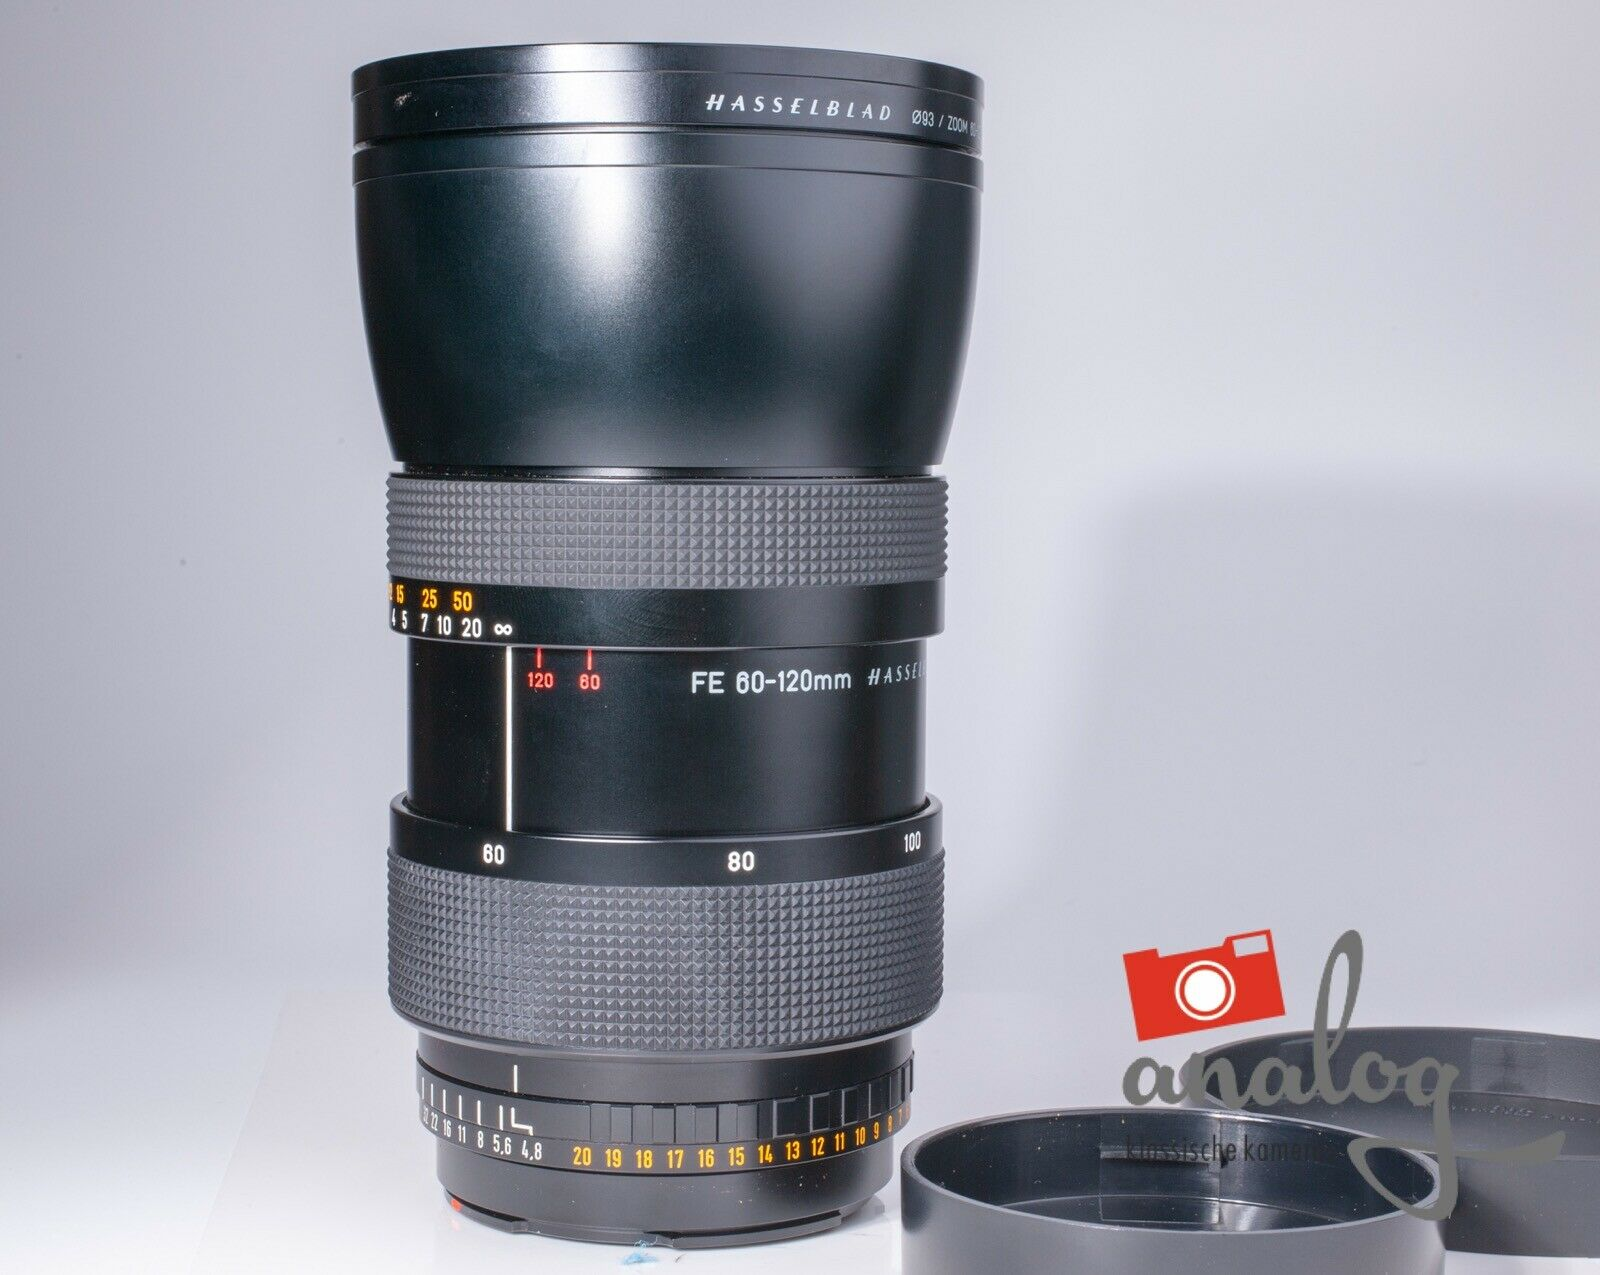 Hasselblad FE 60-120mm 4.8